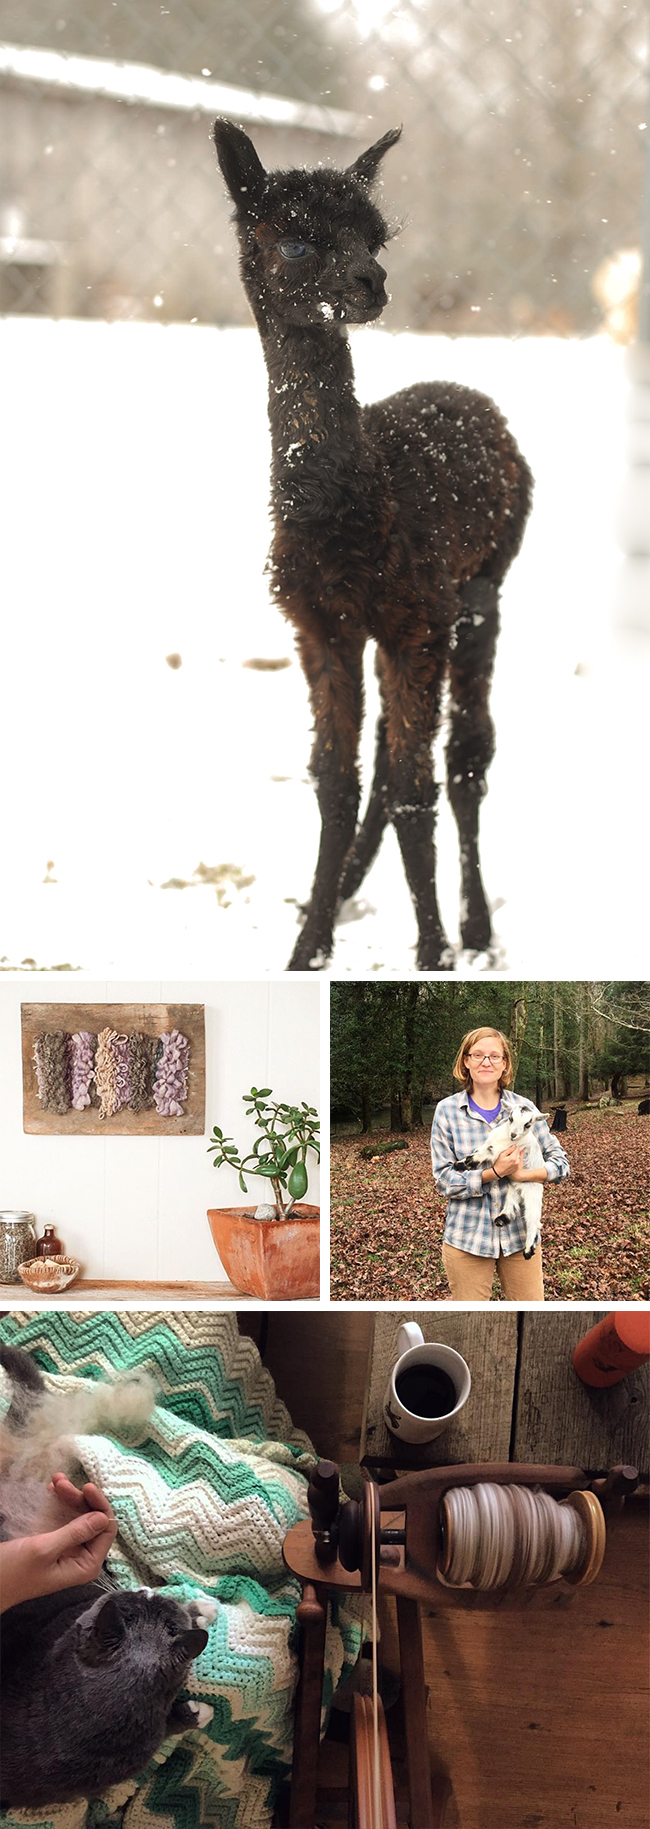 Maker Crush: Kacie Lynn of Fiber Farm